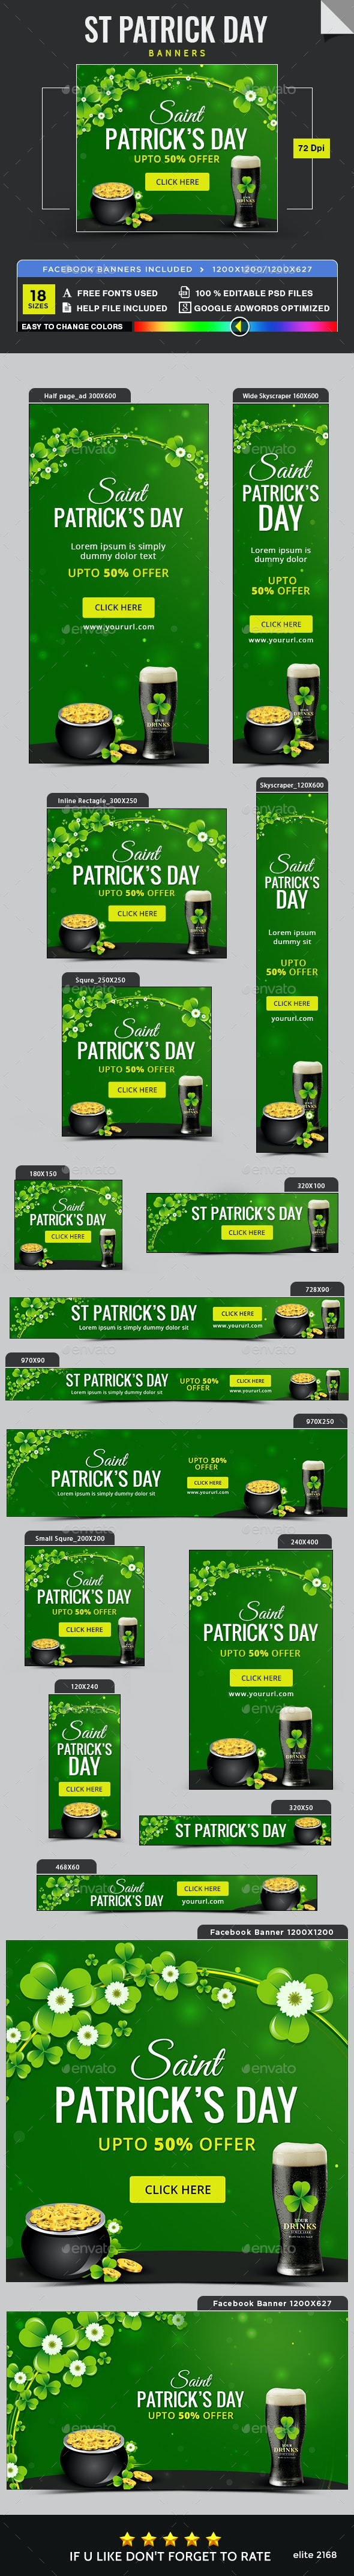 St.Patrick's Day Banners - Banners & Ads Web Elements